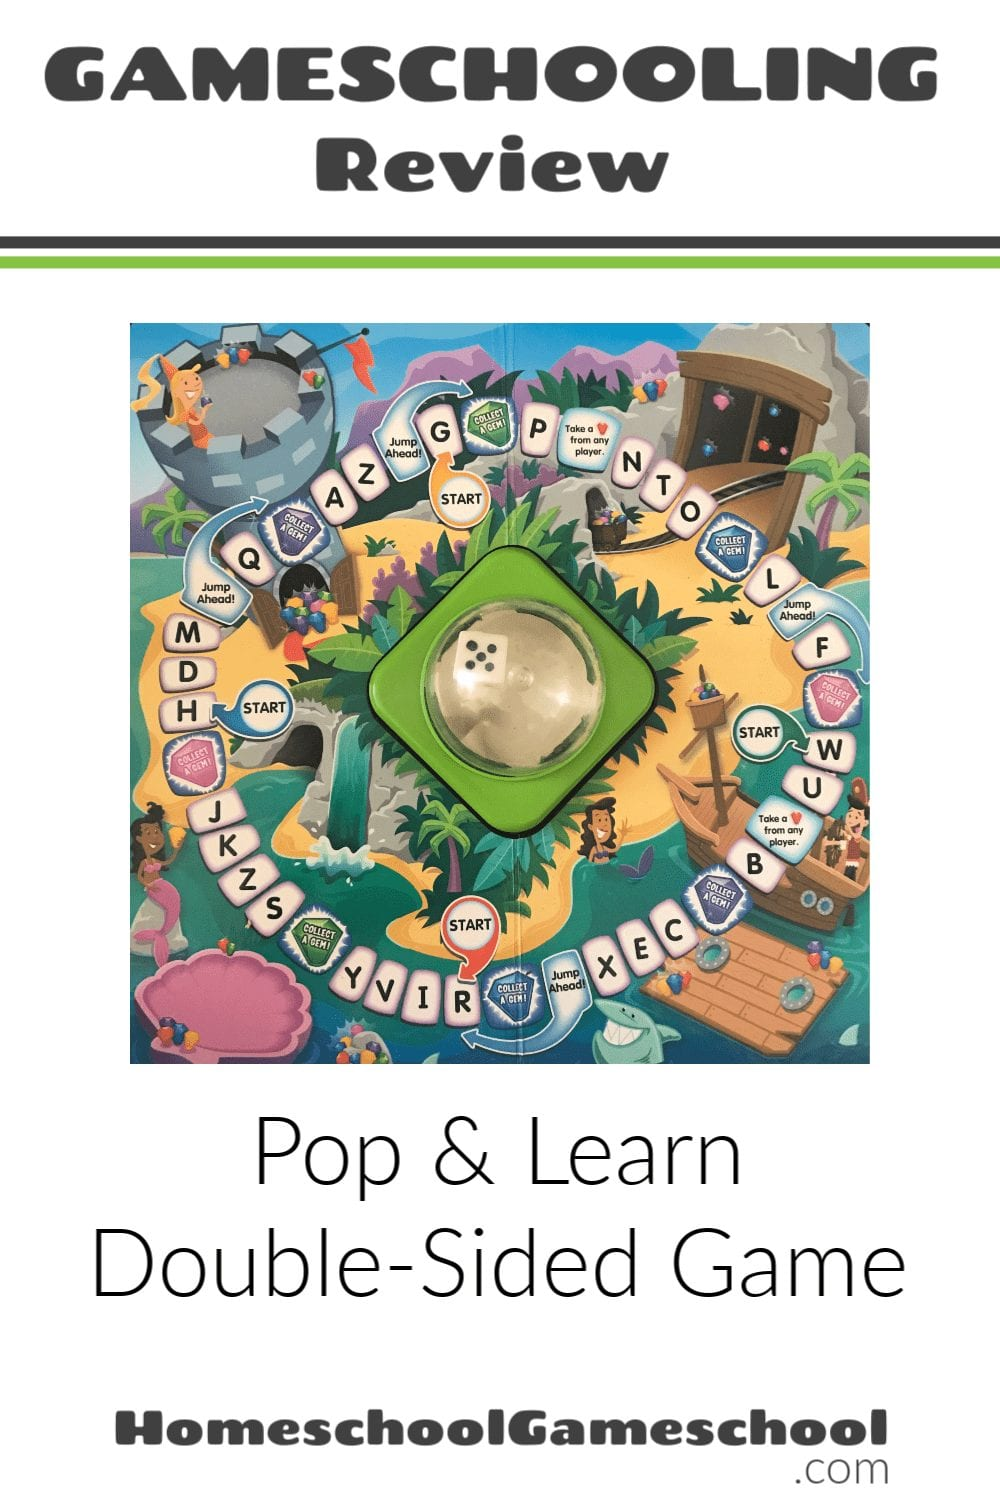 Pop and Learn Review - Gameschooling & Secular Homeschooling @ HomeschoolGameschool.com